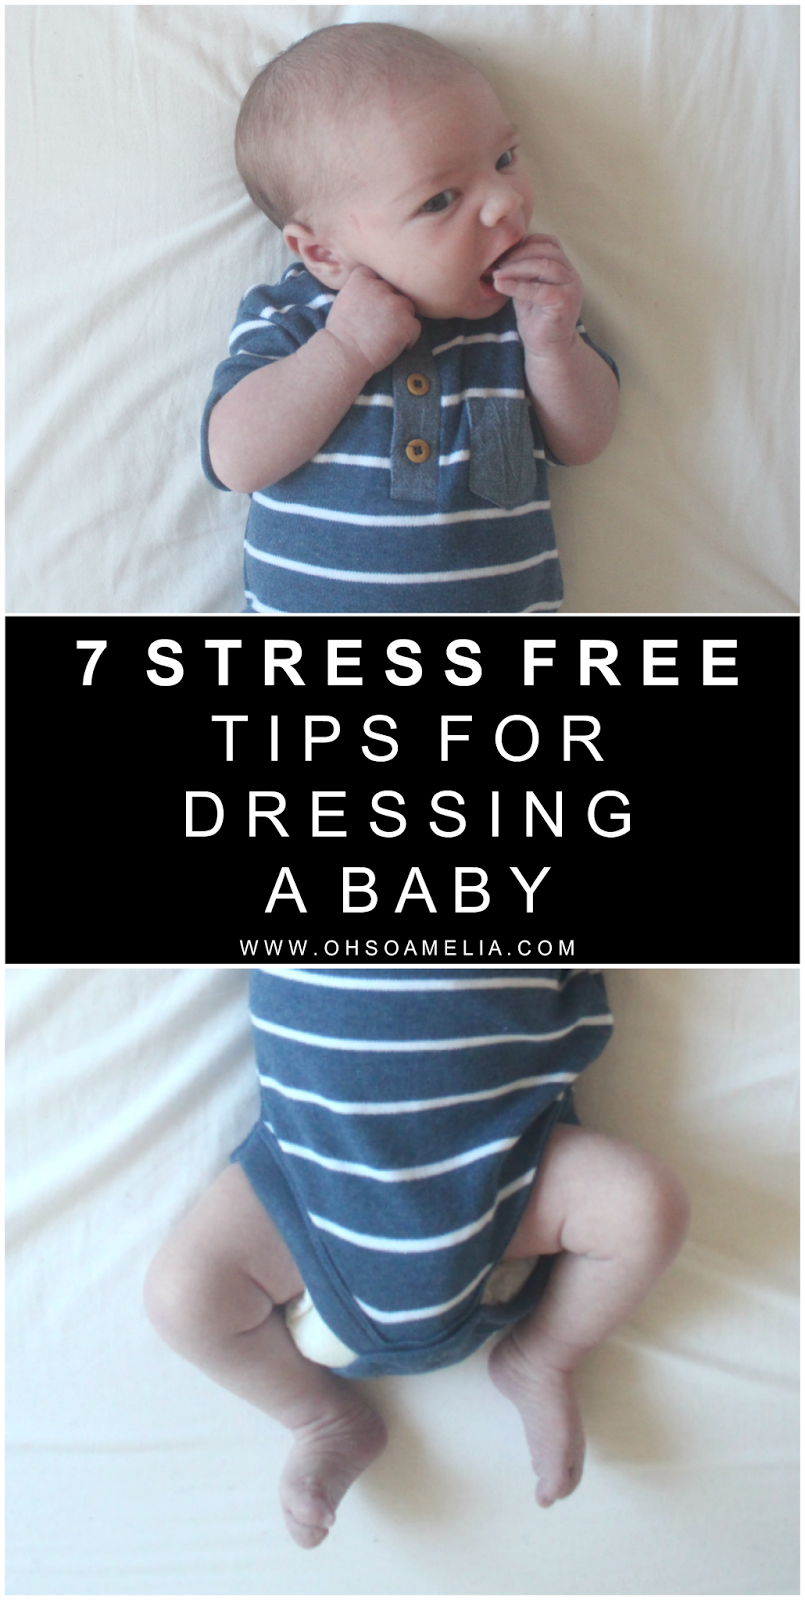 Baby on the way? Here are 7 stress free tips for dressing a baby! Check out these top tips on how to dress your new bundle of joy without getting in a panic.